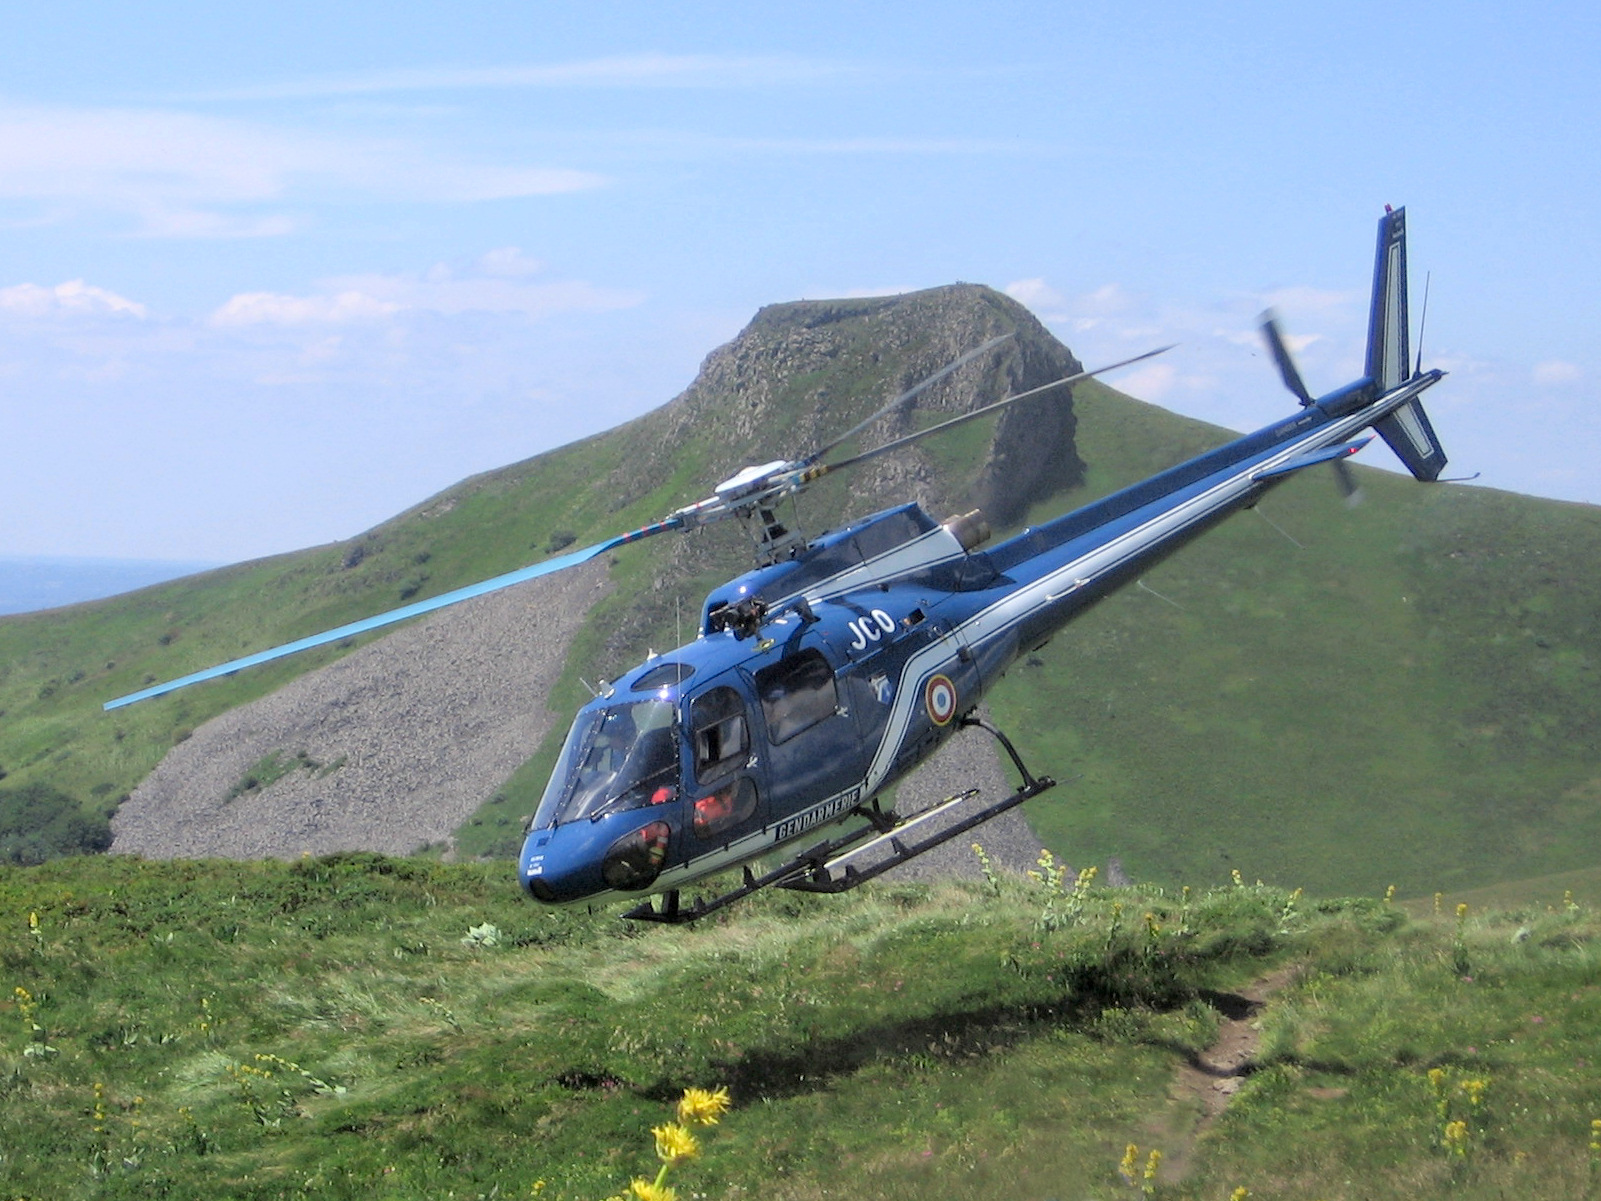 Helicopter_rescue_sancy_takeoff.jpg